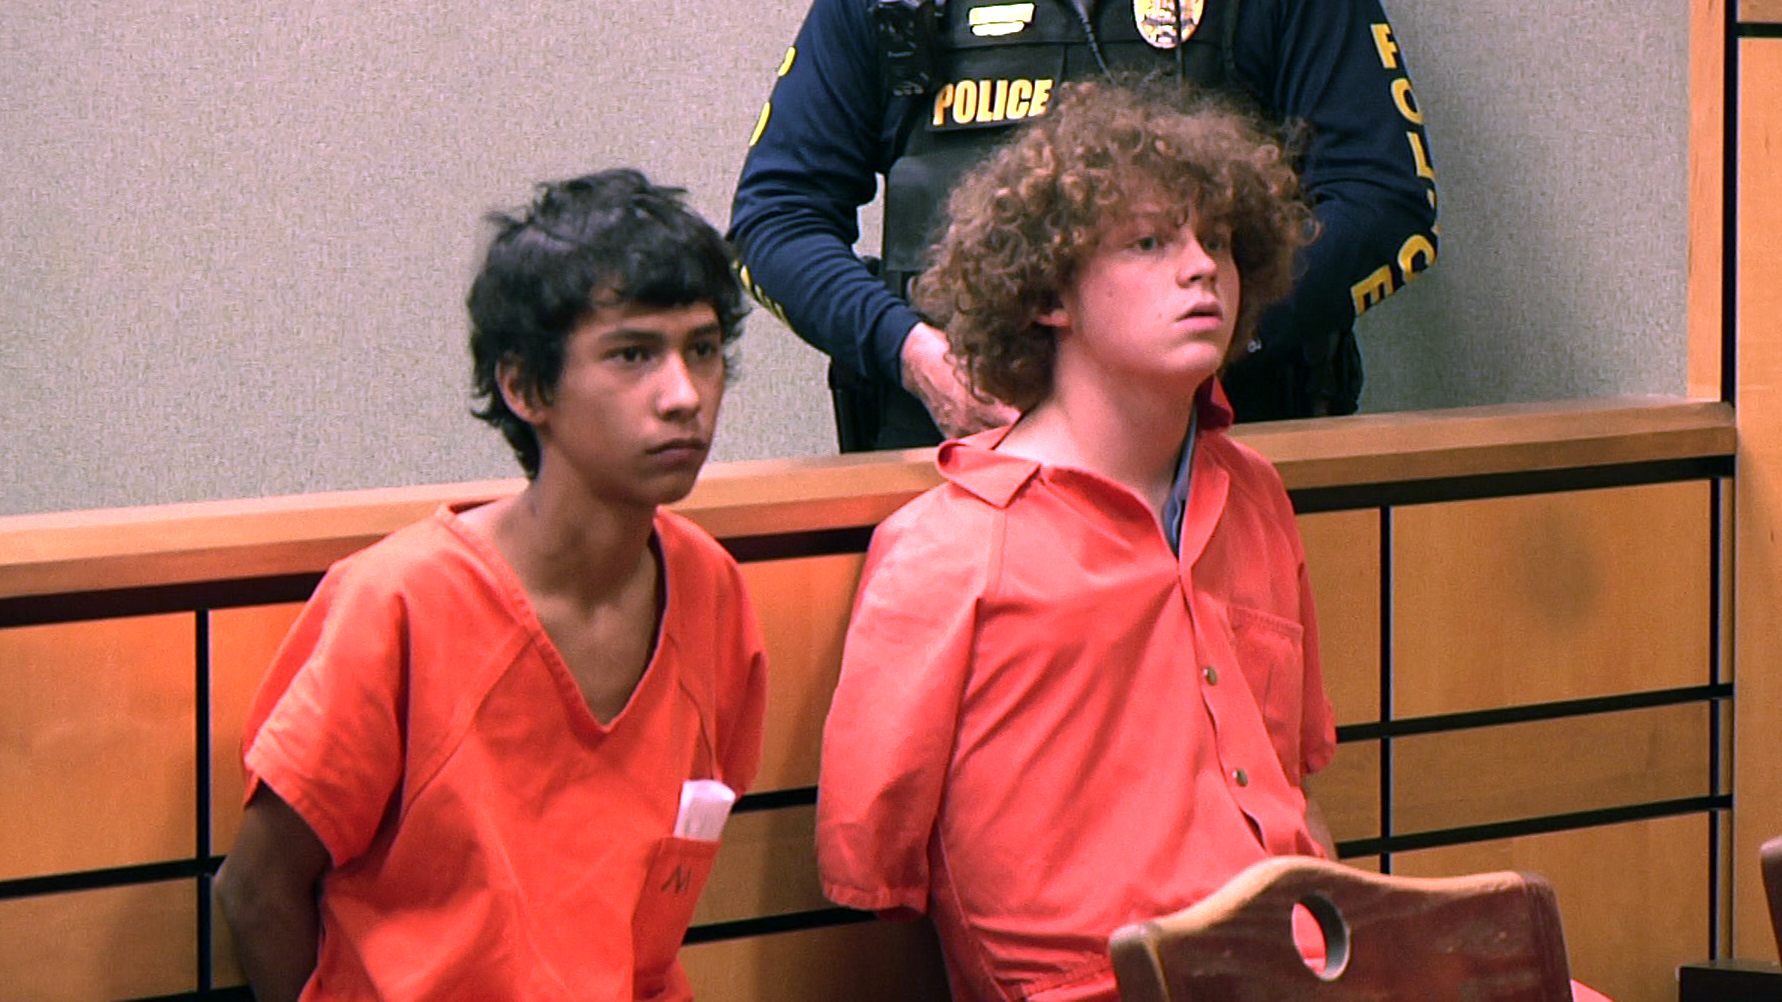 Carlos Jimenez (left) and Zachary Tost at a bond hearing in Anderson, December 4, 2019.